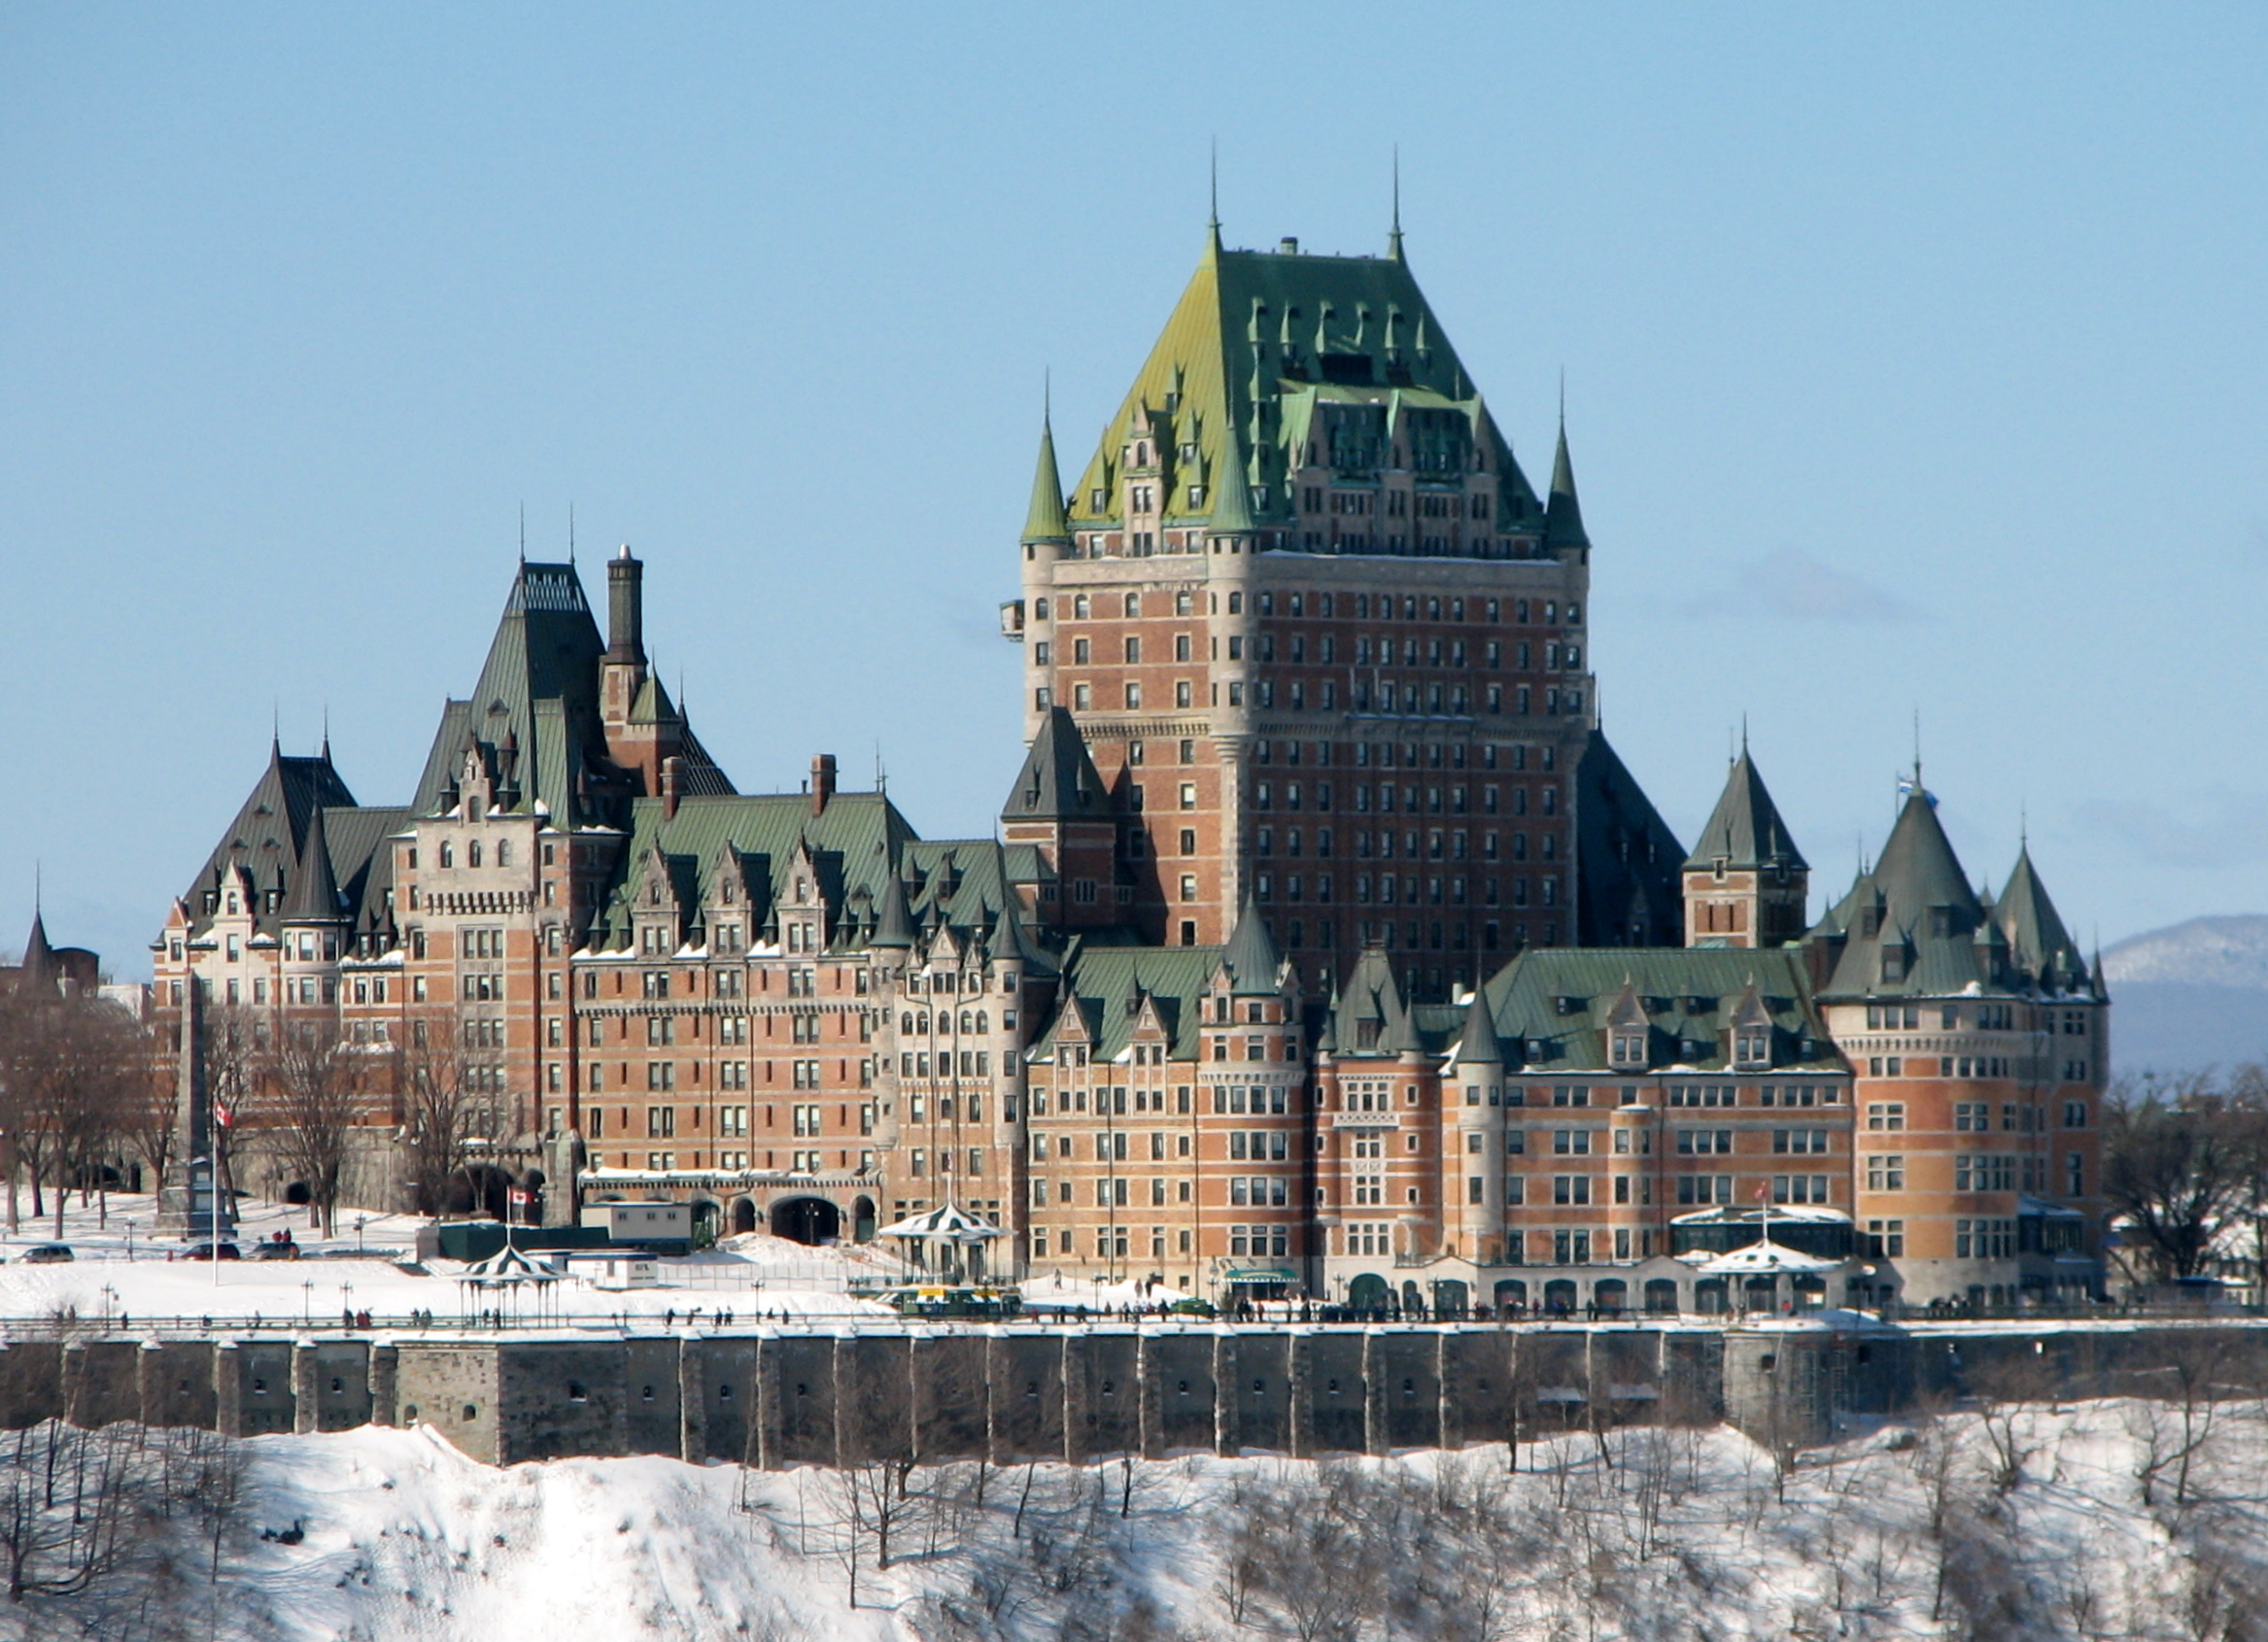 My Life In Retirement Q Is For Quebec City